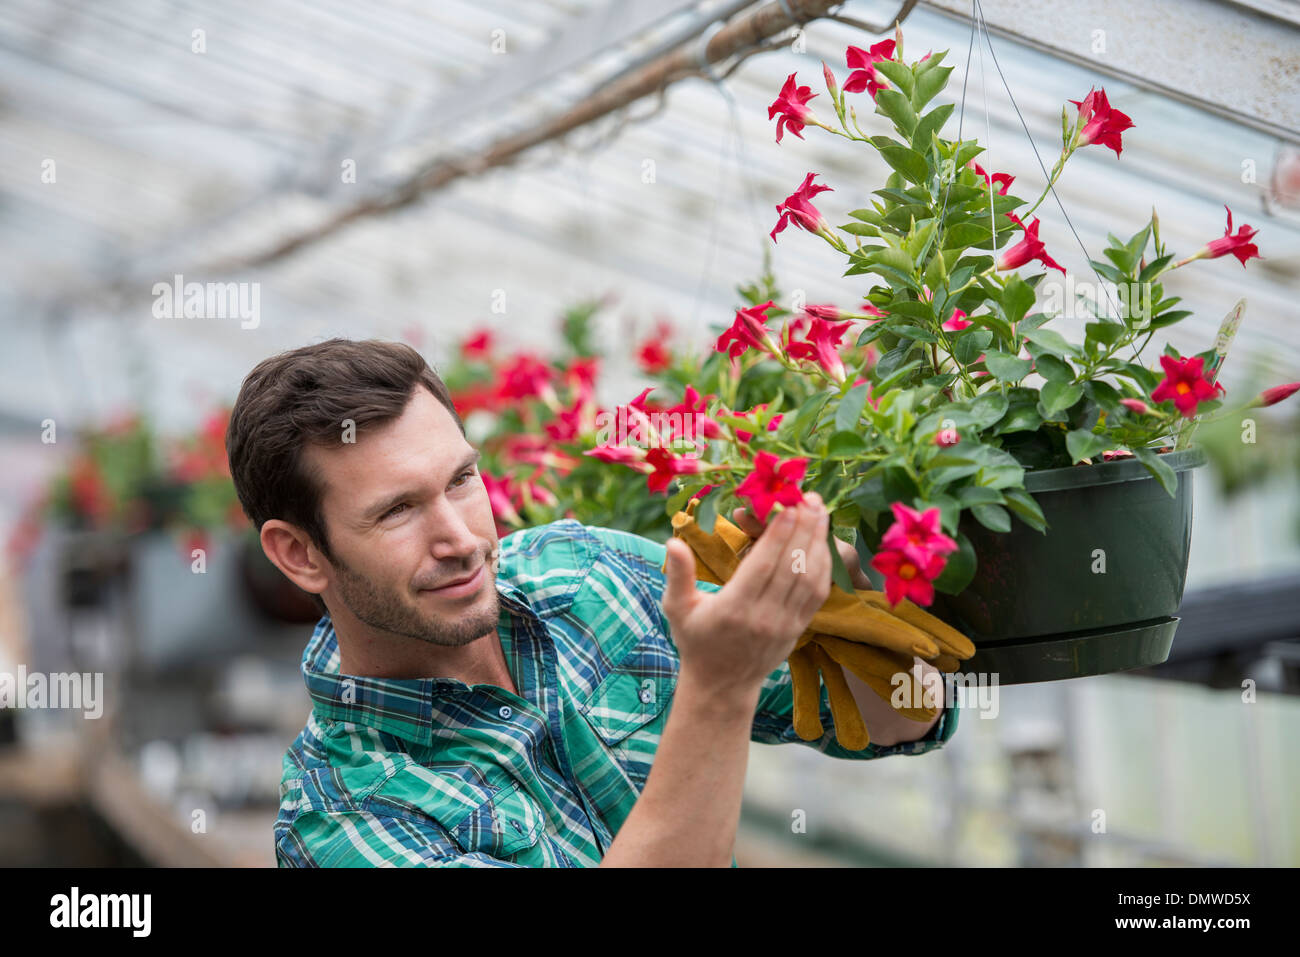 An organic flower plant nursery. A man checking  hanging baskets. - Stock Image